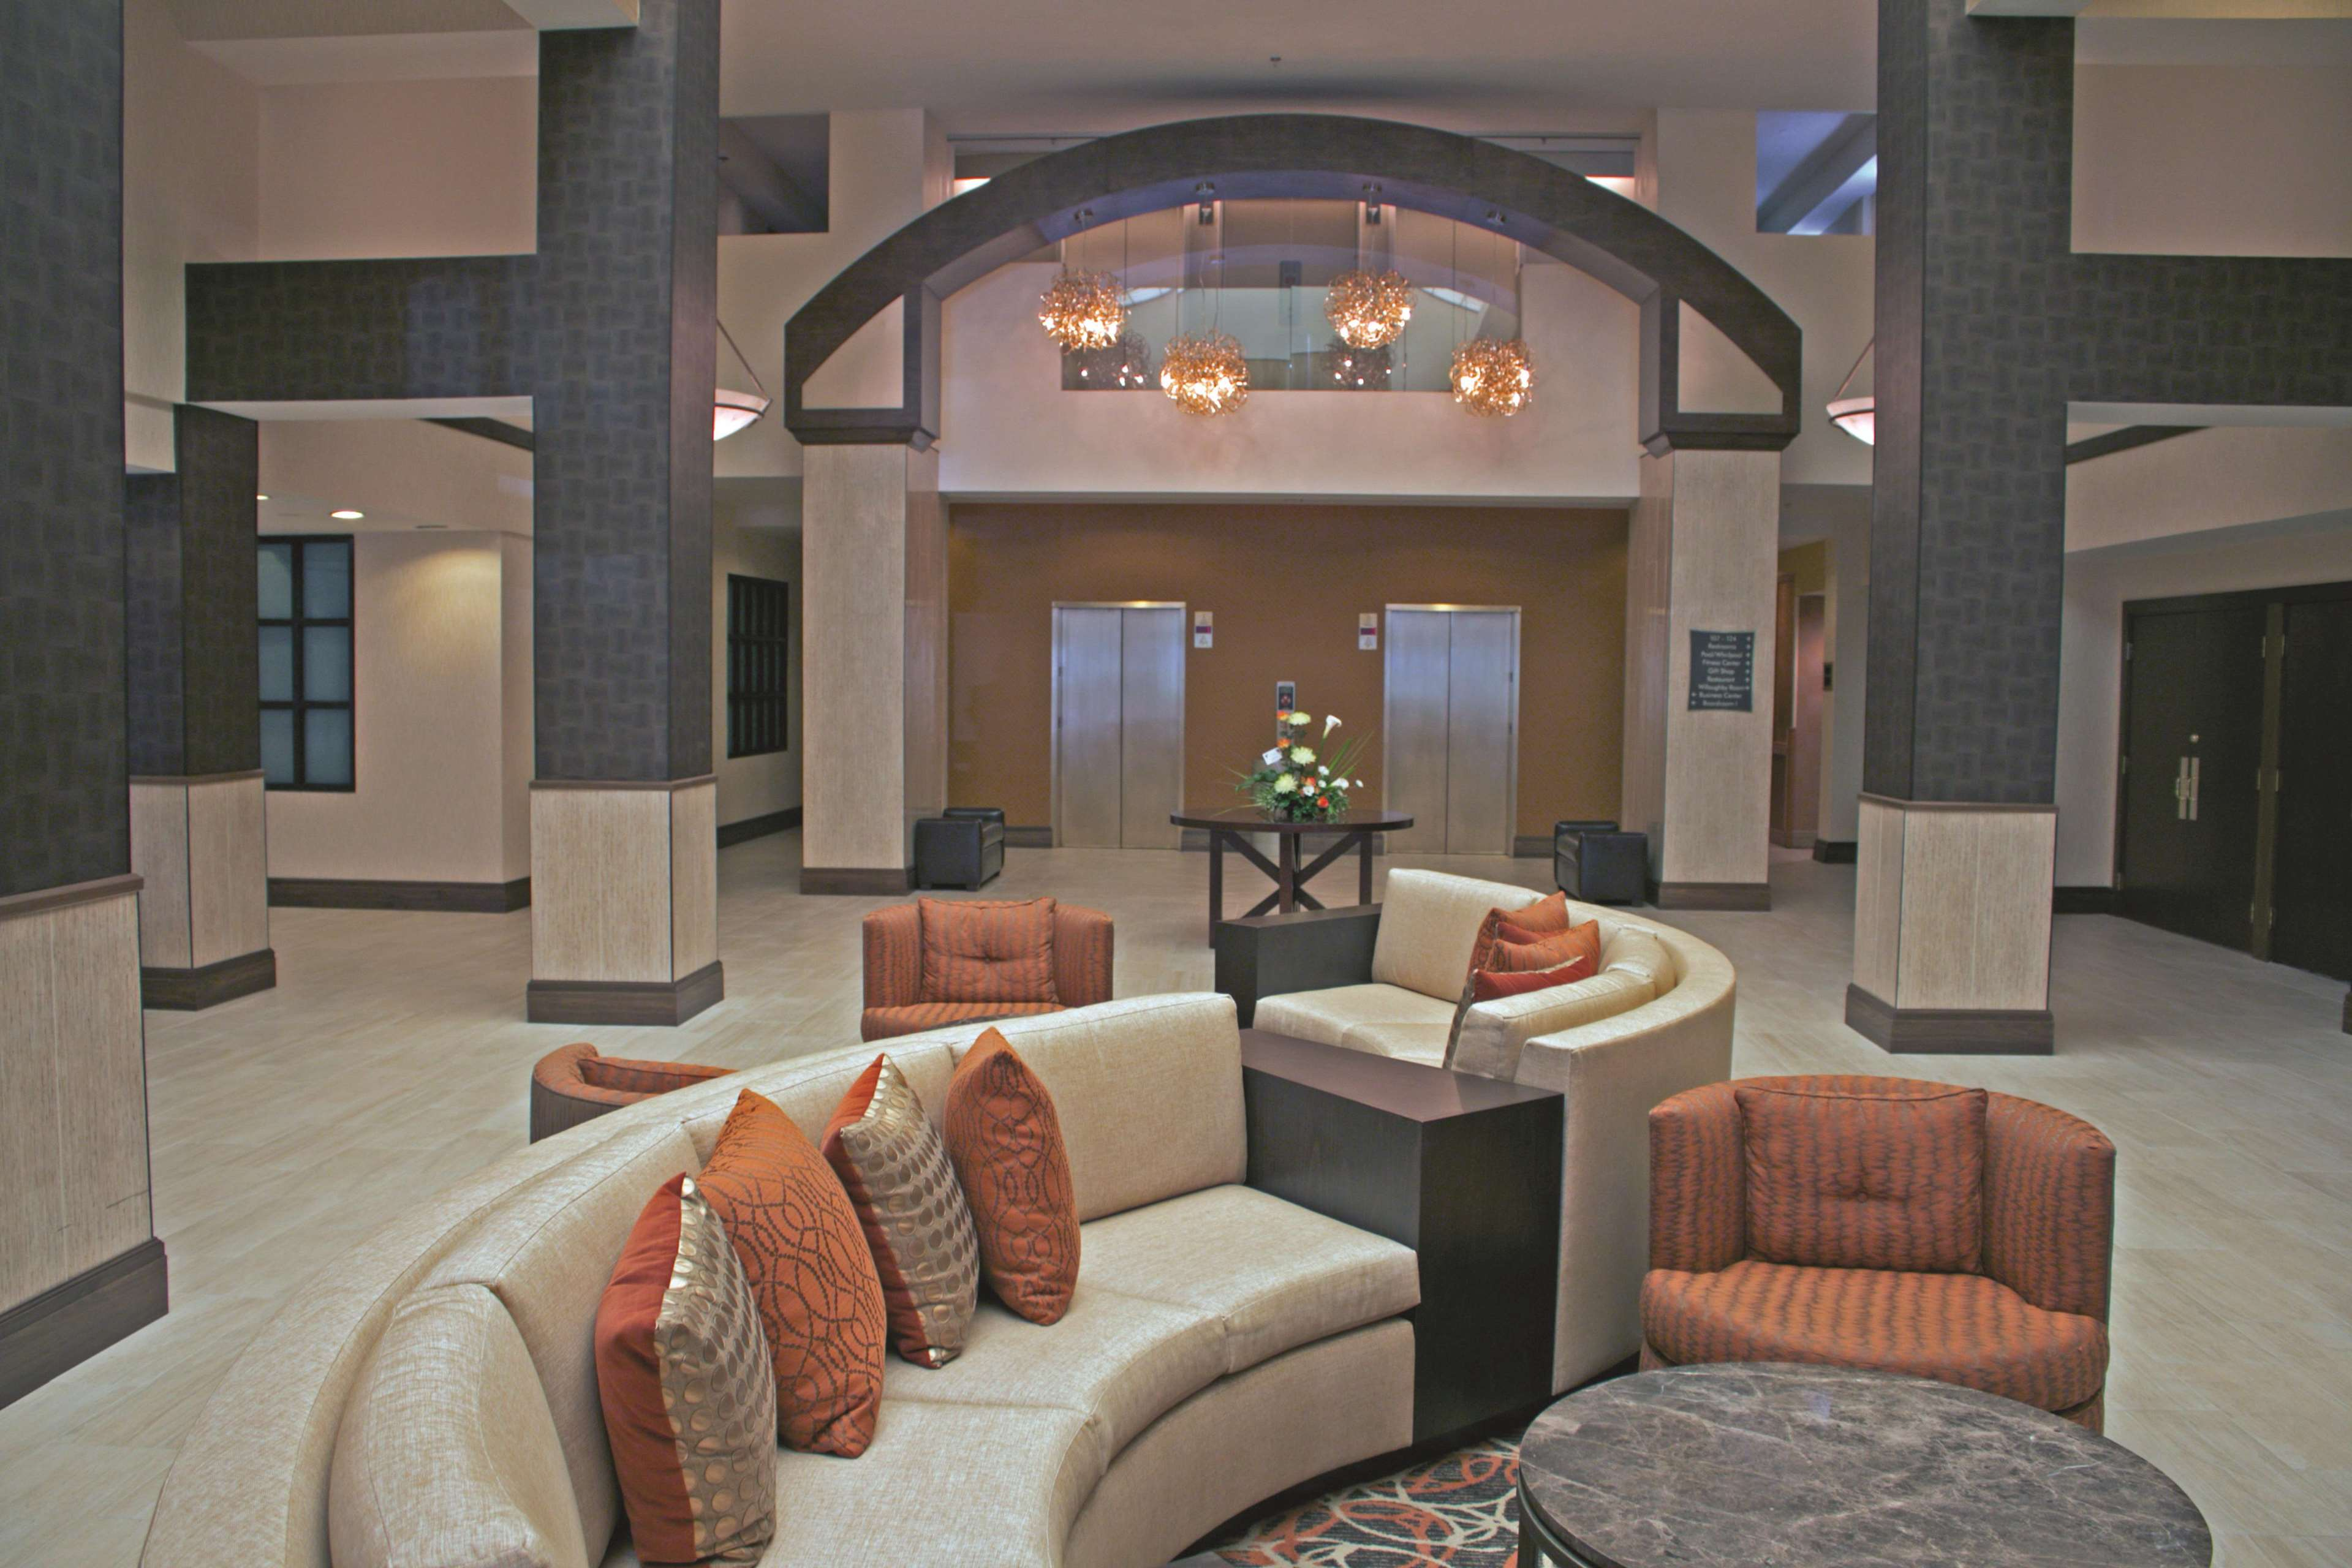 DoubleTree by Hilton Hotel Norfolk Airport image 4